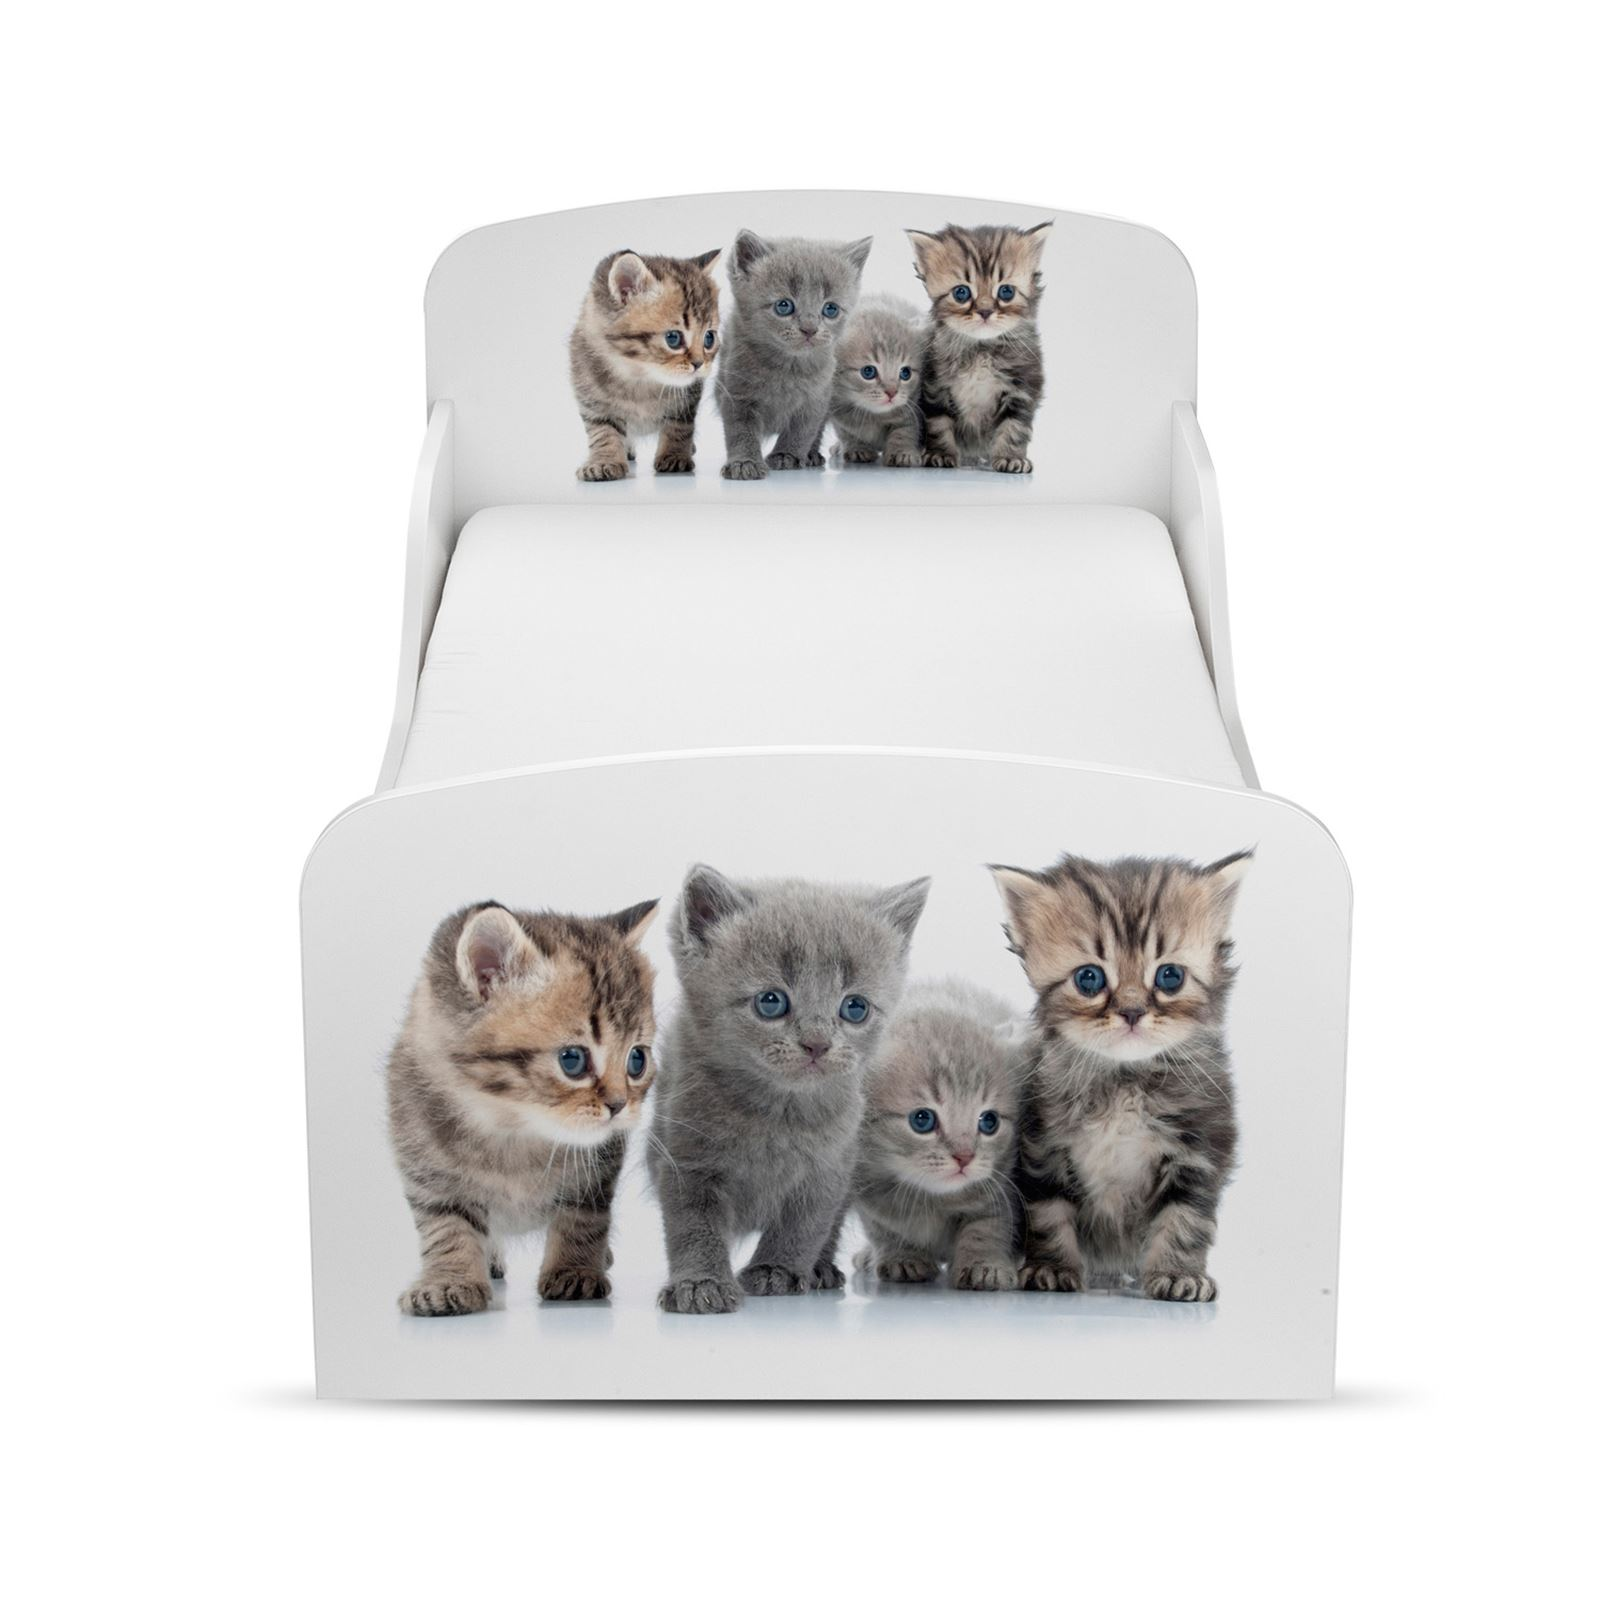 PRICE-RIGHT-Home-Chaton-Bebe-stockage-Lit-plus-entierement-a-ressort-matelas